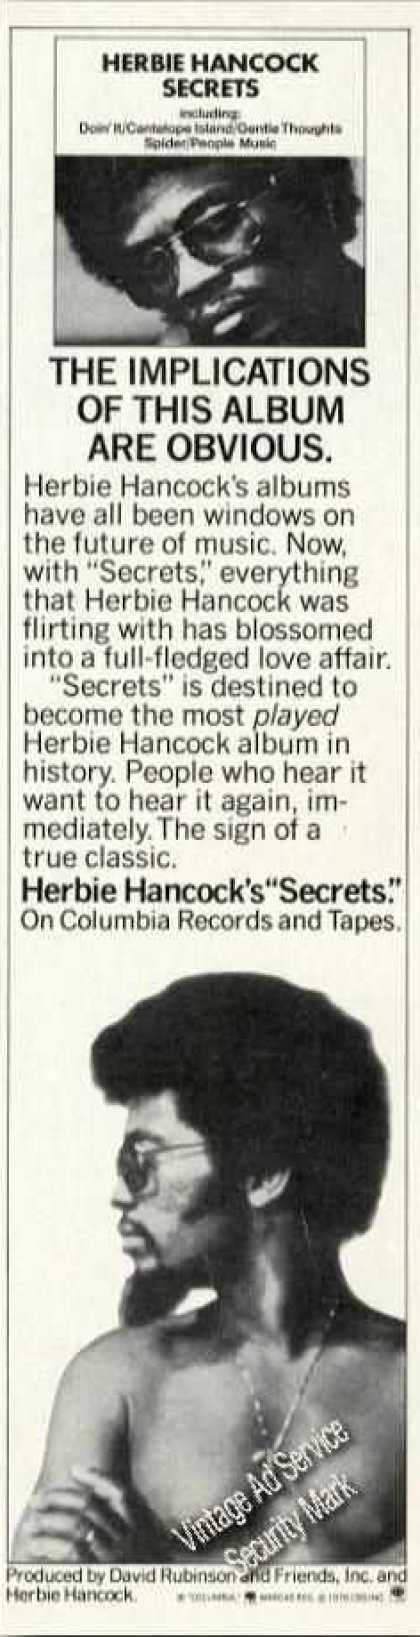 Herbie Hancock Photo Album Promo Music (1976)